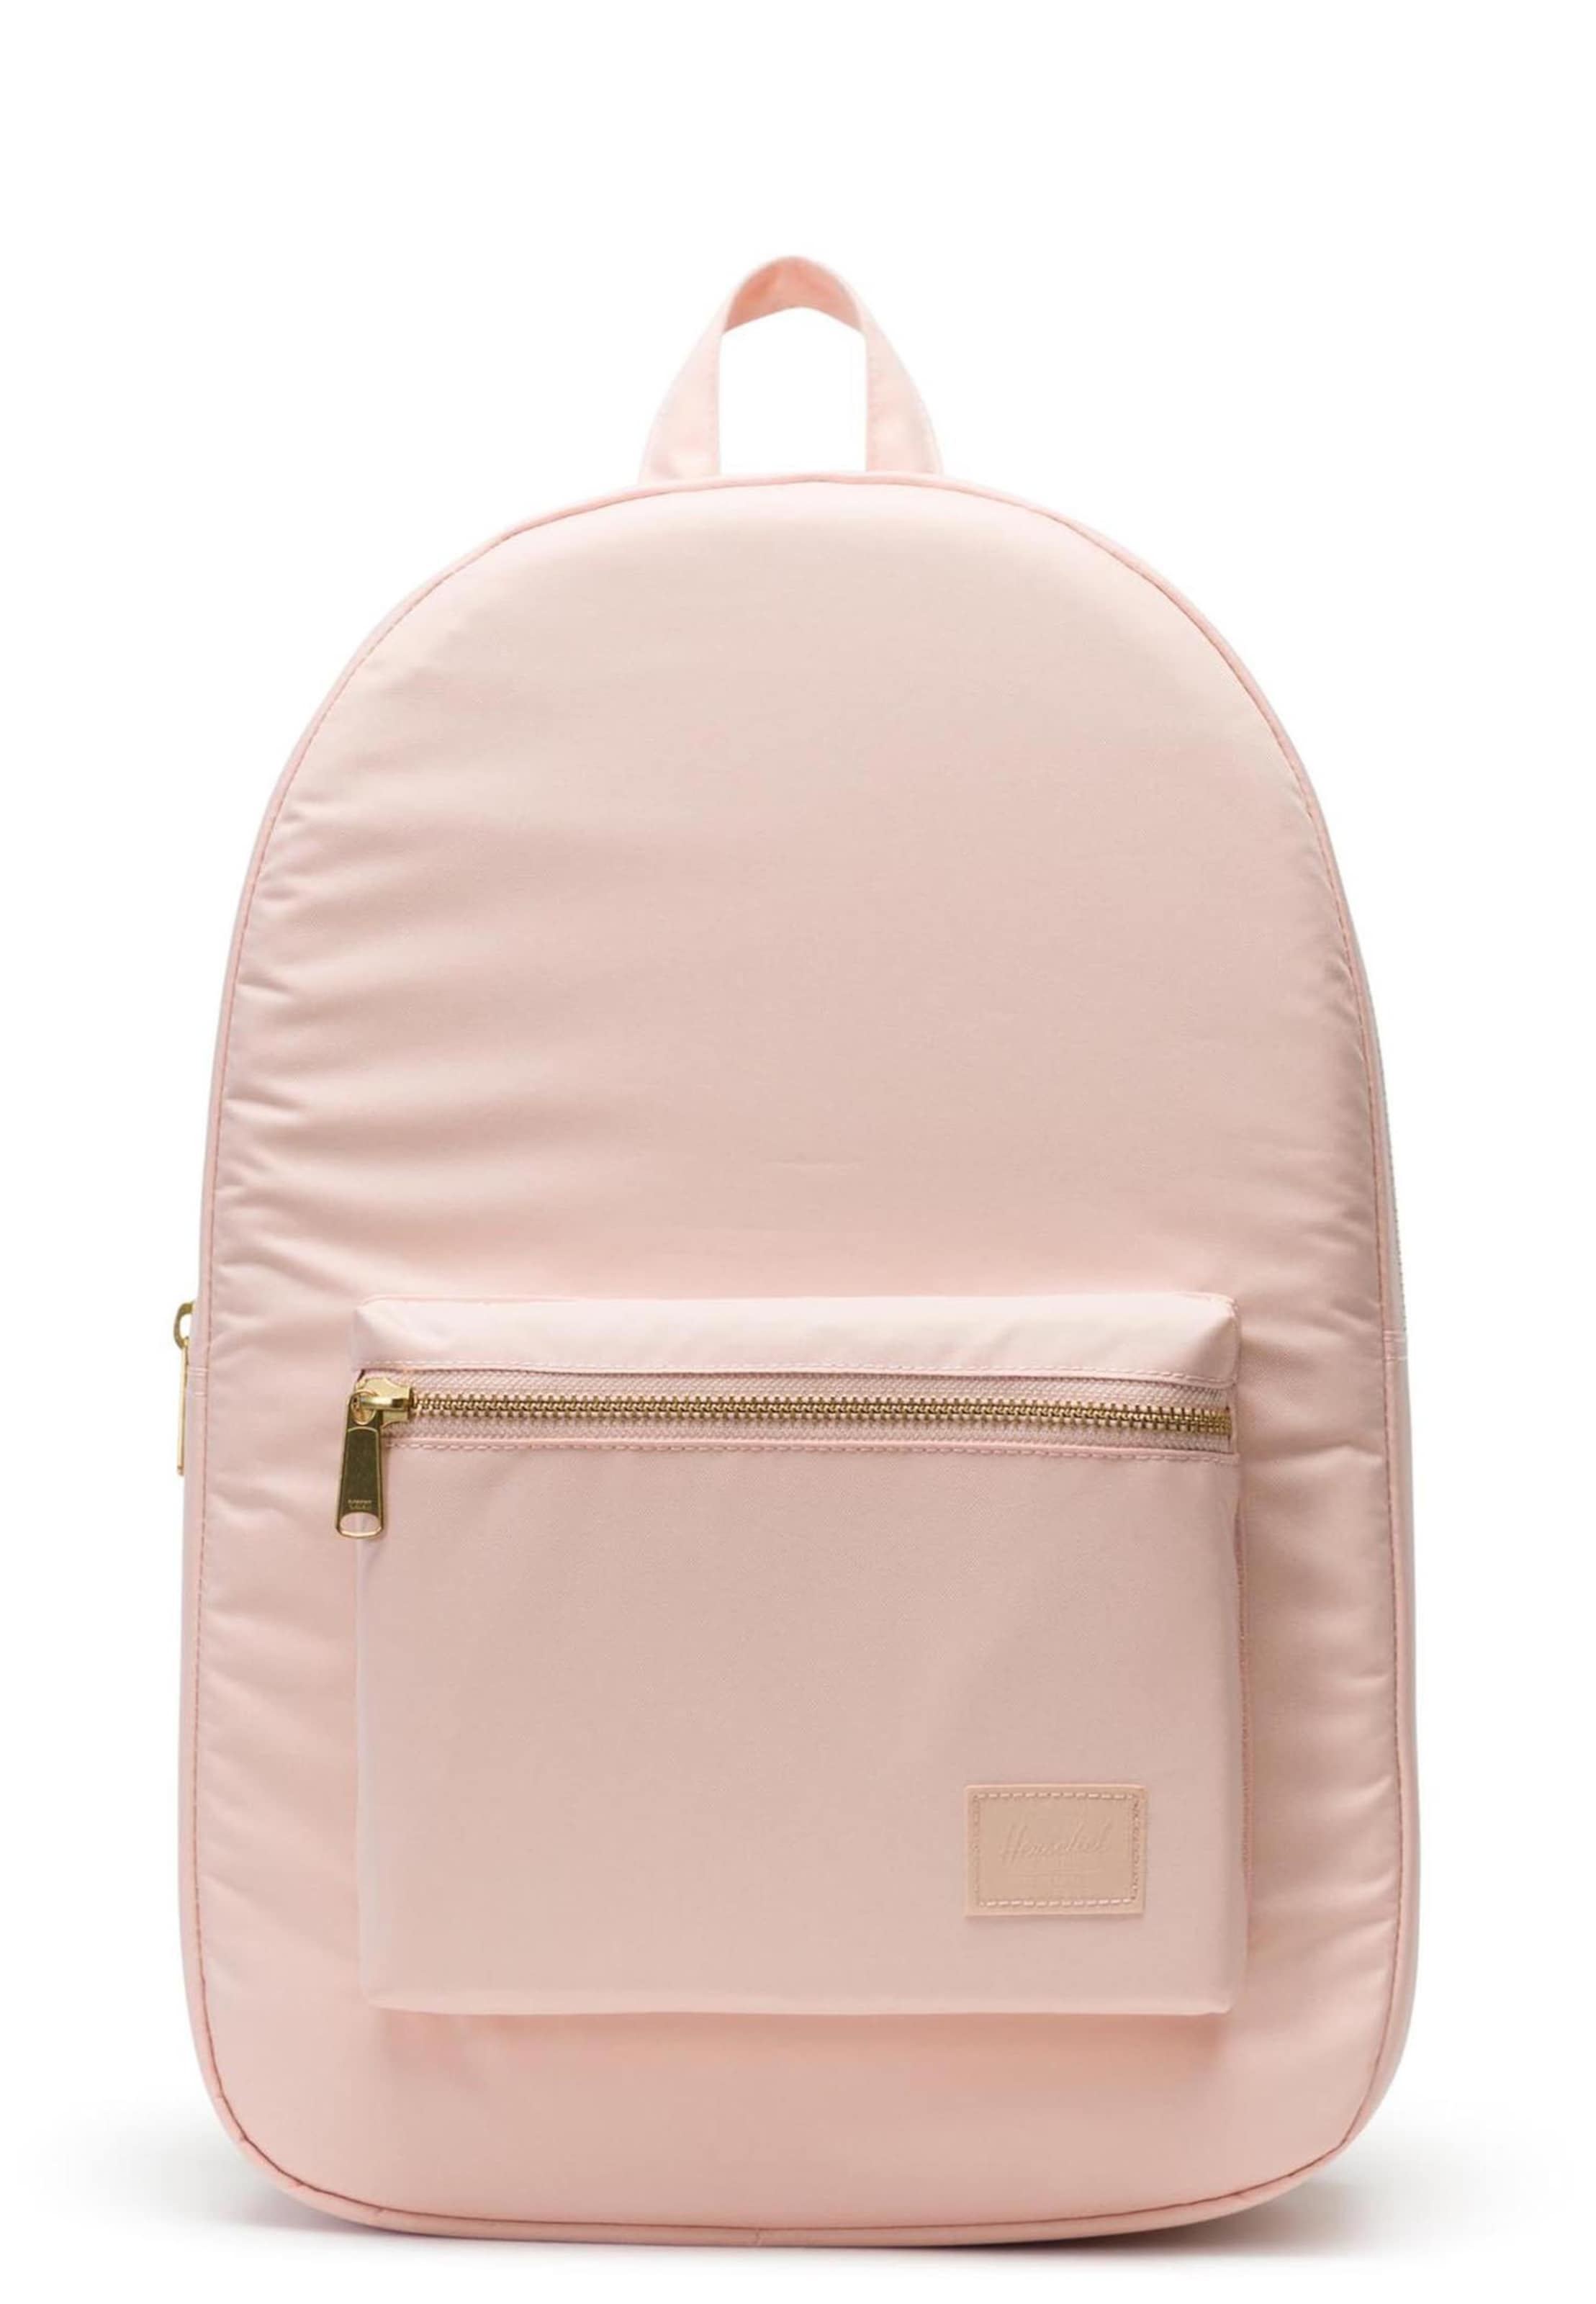 Rucksack In Herschel Light' Altrosa 'settlement iTOXZPku